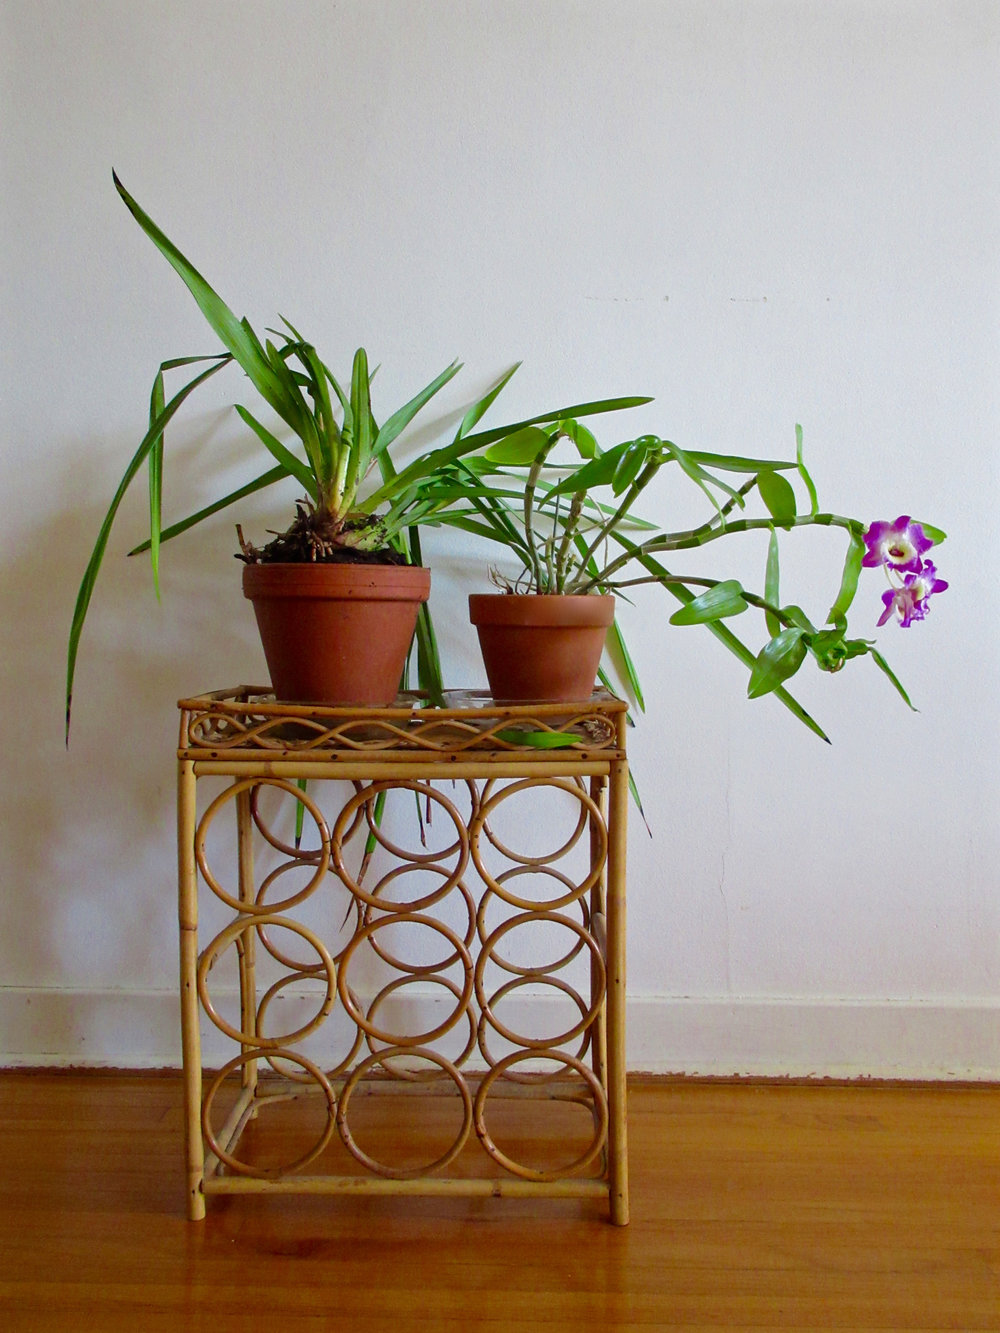 The two shelf mate orchids, 2019